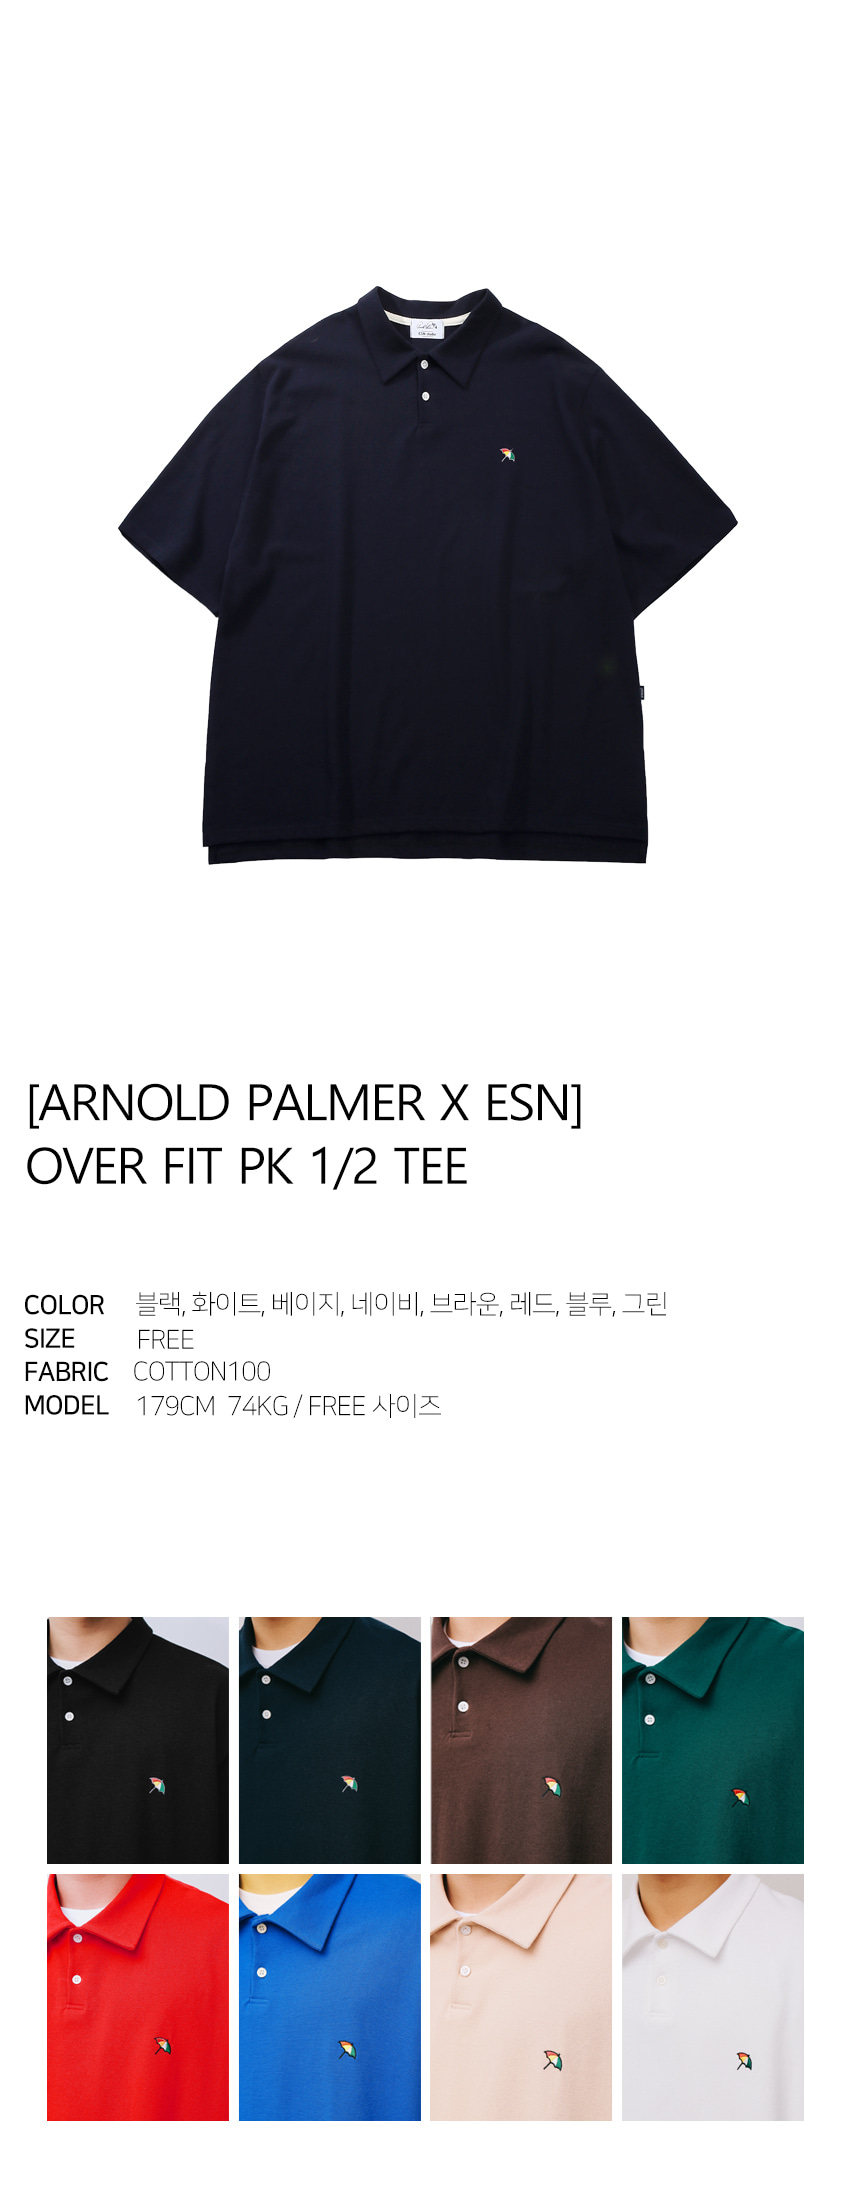 [ARNOLD PALMER X ESN] Over fit PK 1/2 Tee navy